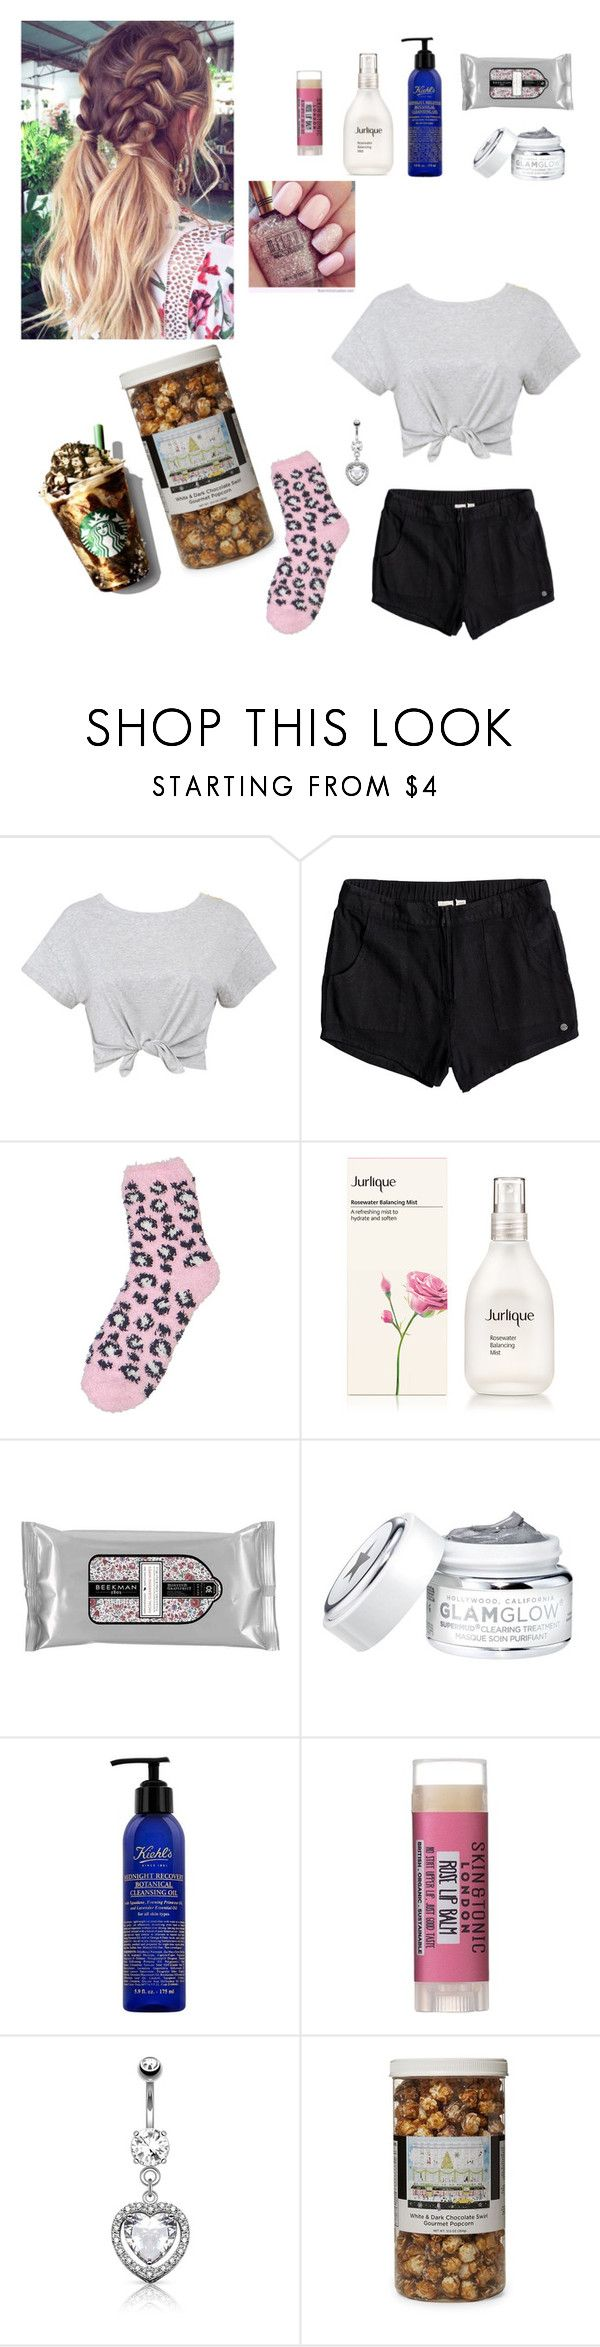 """Untitled #685"" by nicole-jordan0342 ❤ liked on Polyvore featuring Roxy, Venus, Beekman 1802, Skin & Tonic and The Hampton Popcorn Company"